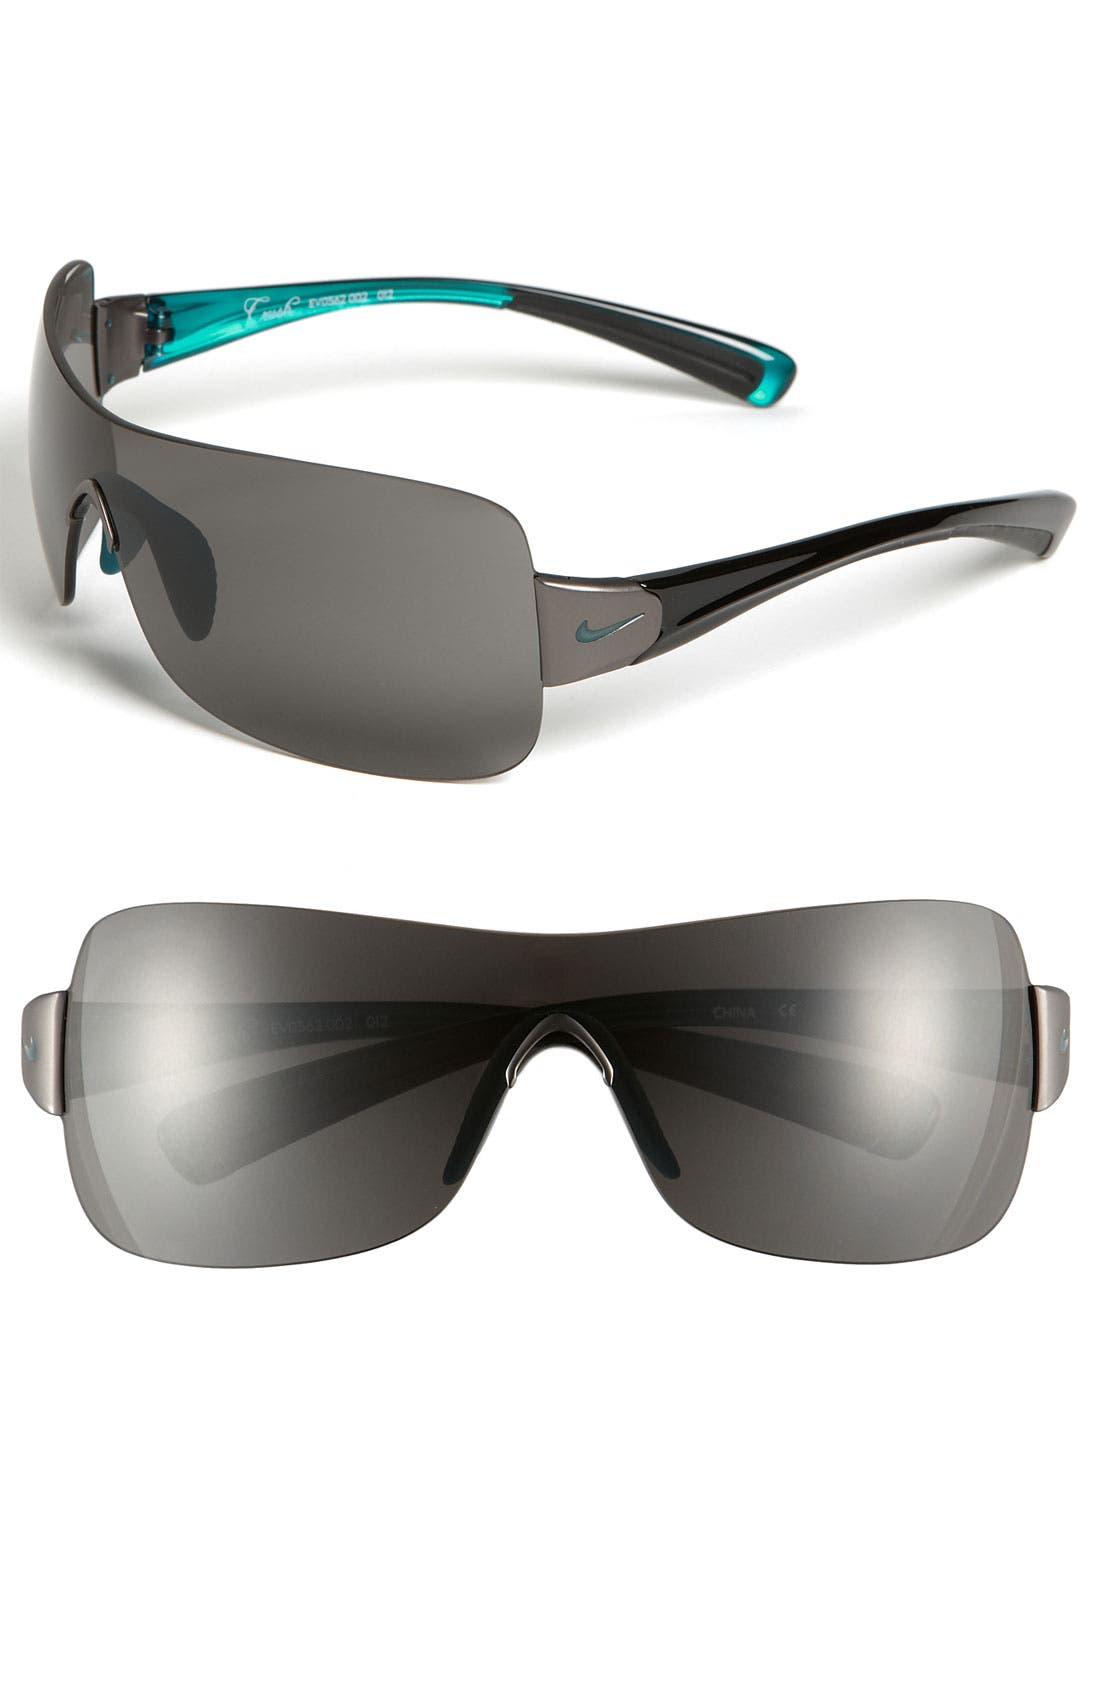 Main Image - Nike 'Crush' 61mm Rimless Shield Sunglasses